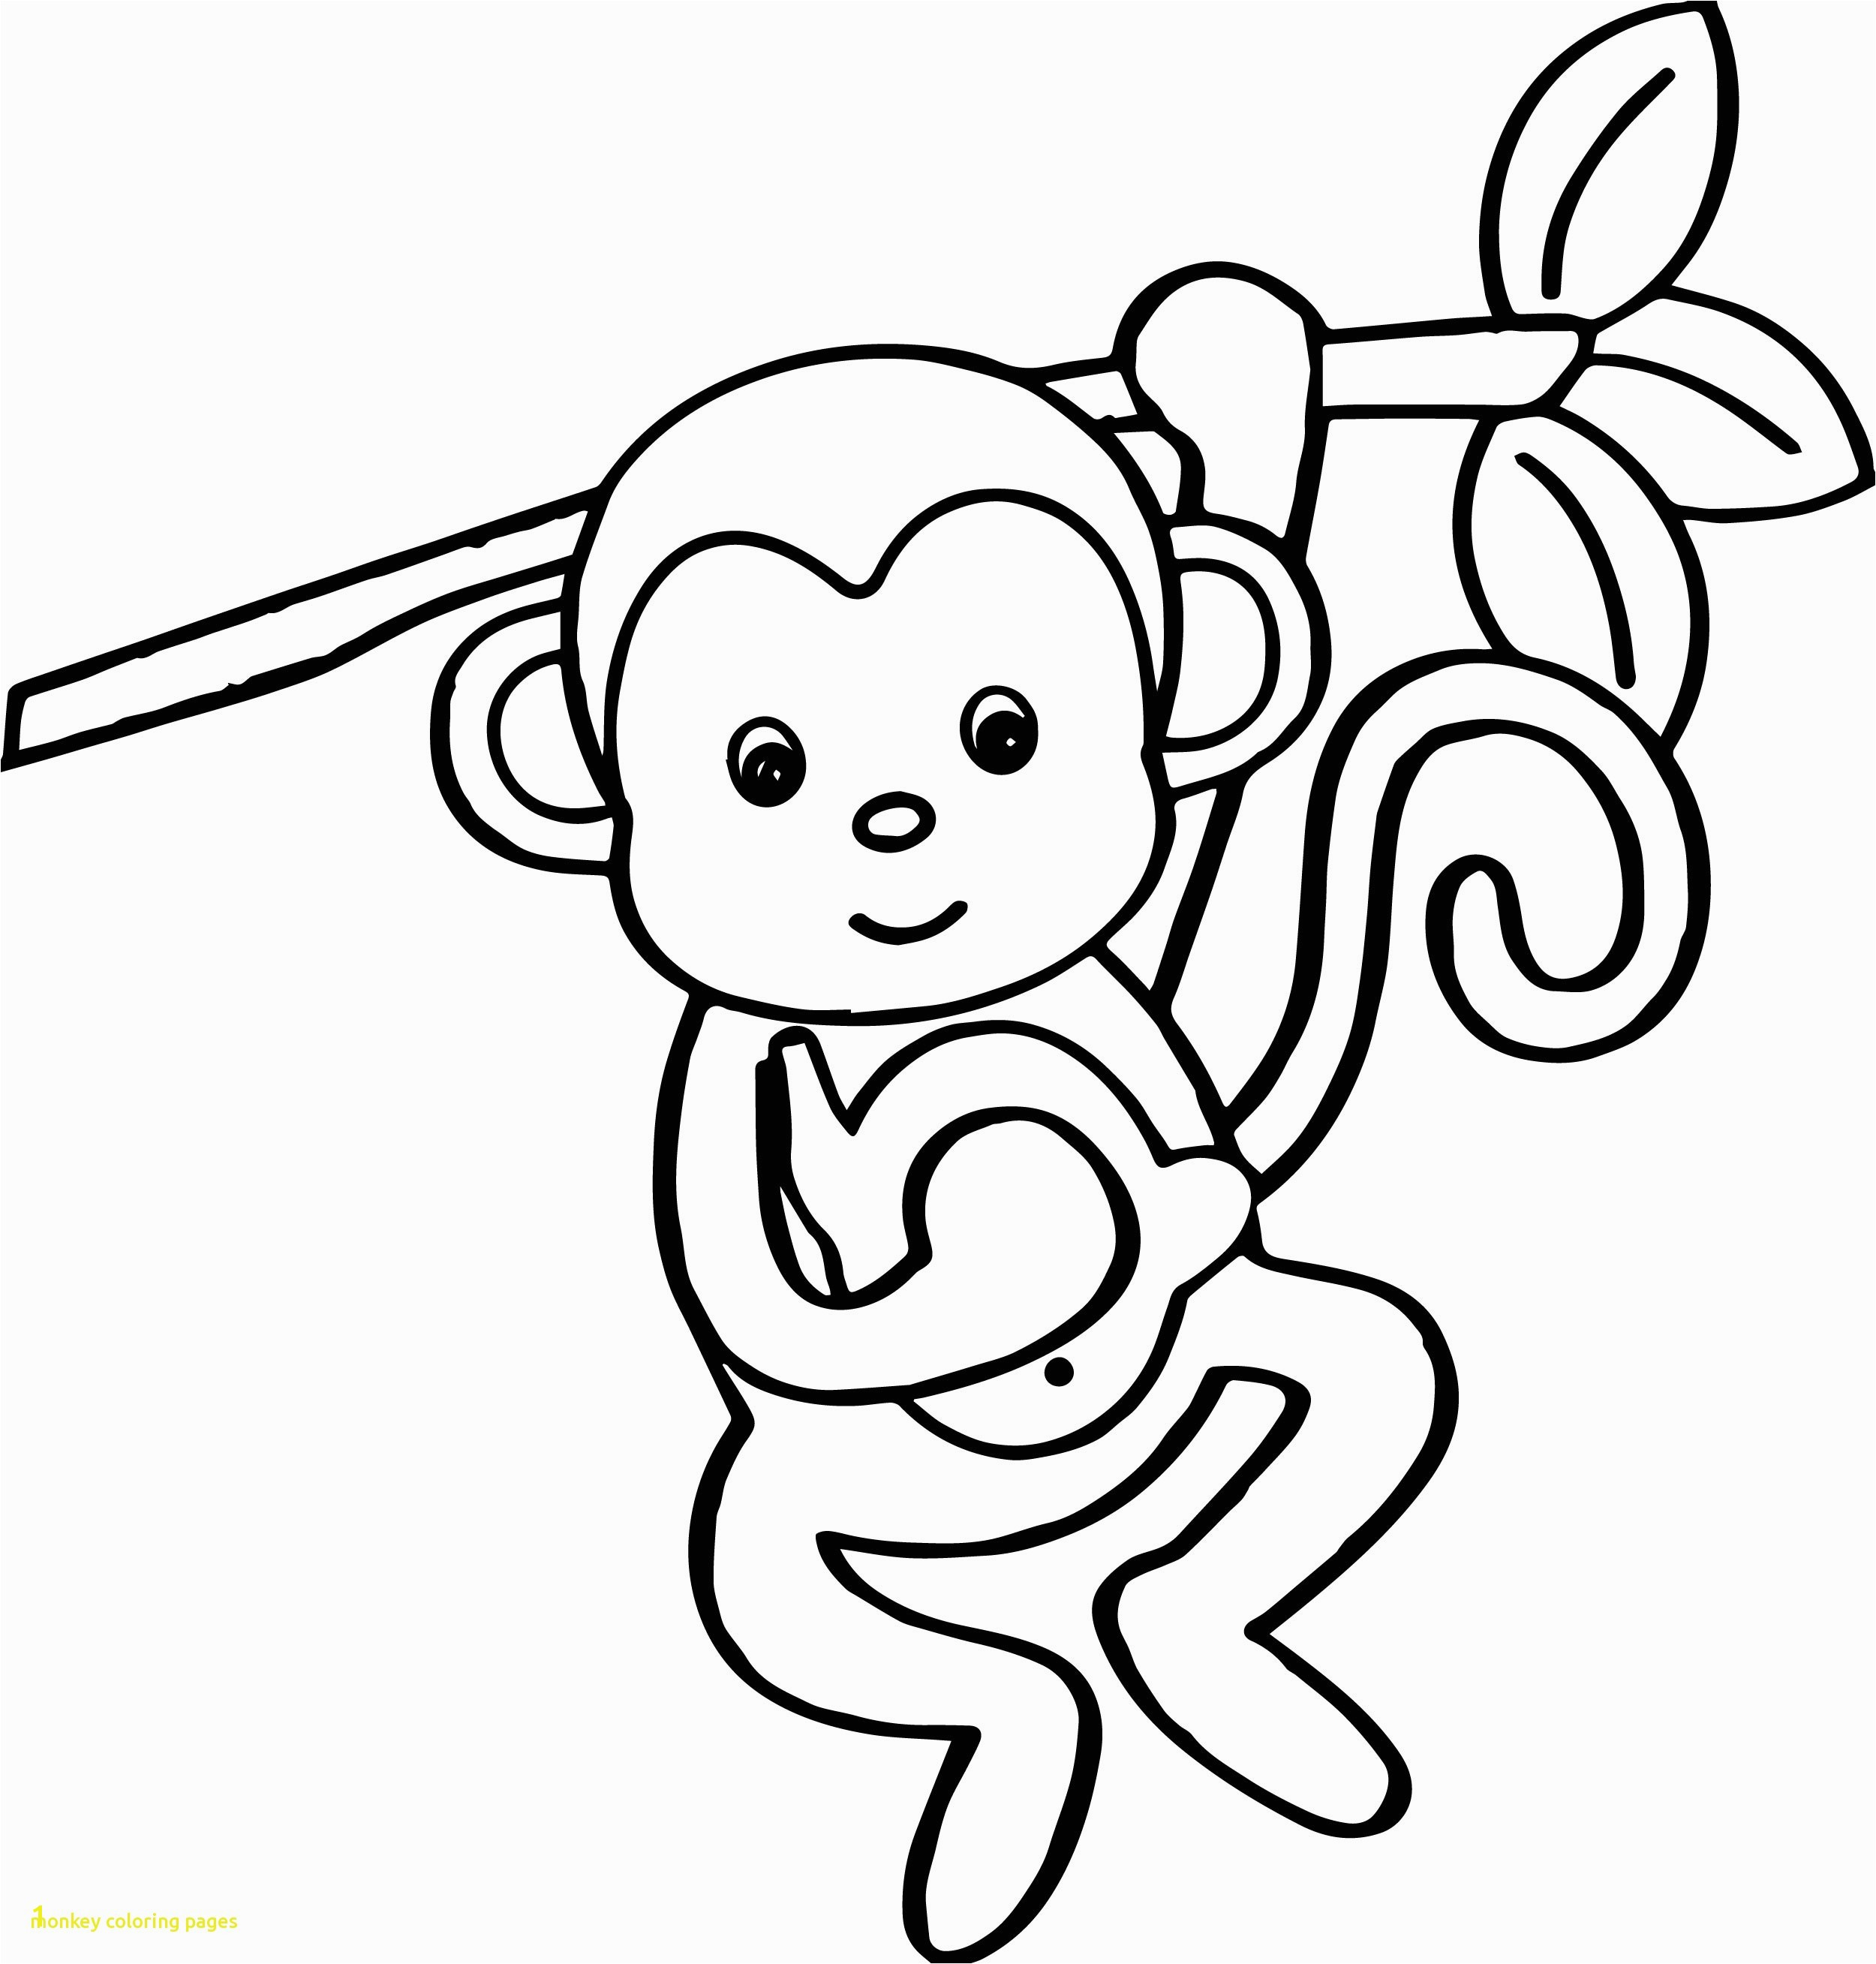 Cute Monkey Coloring Pages 44 with Cute Monkey Coloring Pages 1